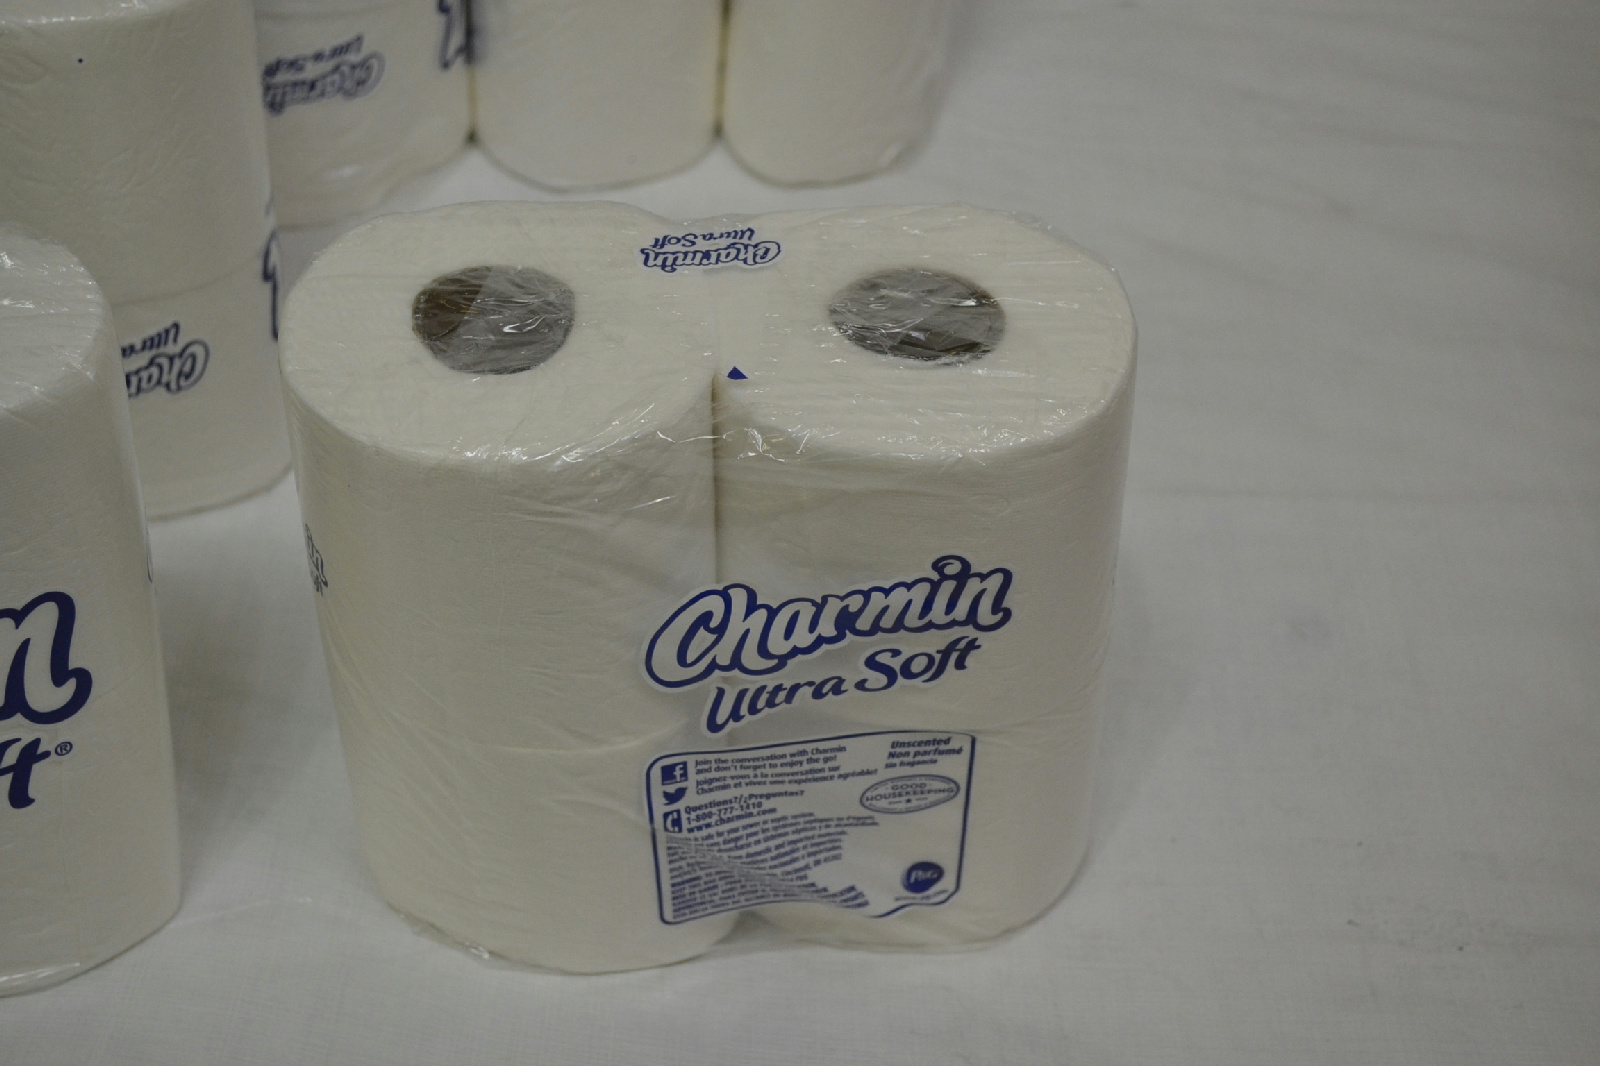 Charmin ultra soft toilet paper 40 double roll 10 packs of for Toilet paper roll jewelry box